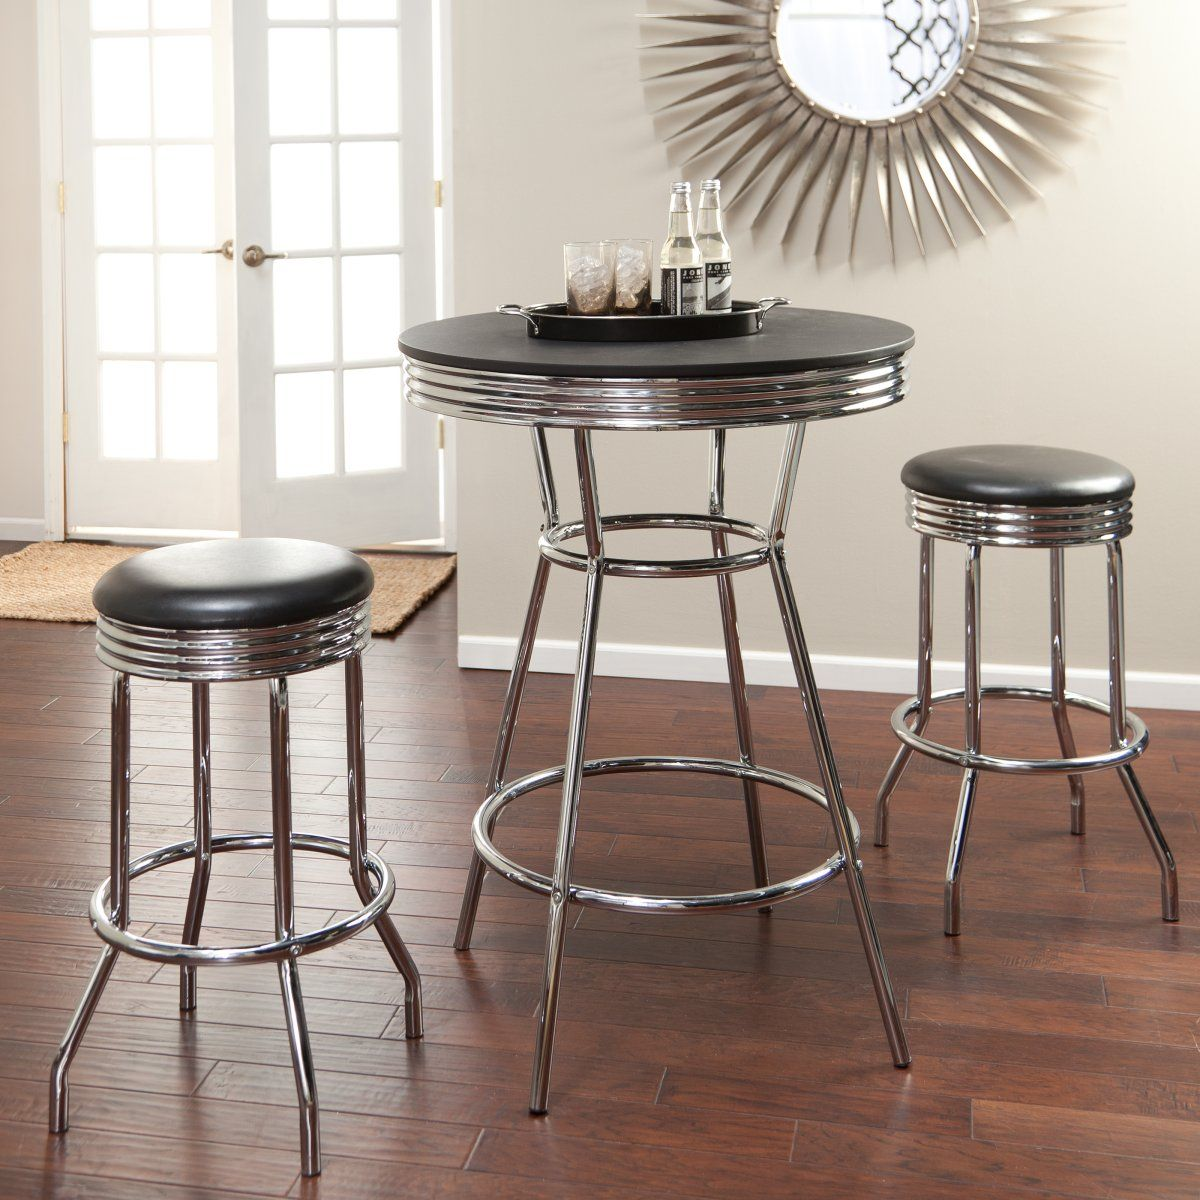 Retro 3 Piece Chrome Bar Stools And Table Set Great Tables For Kitchen